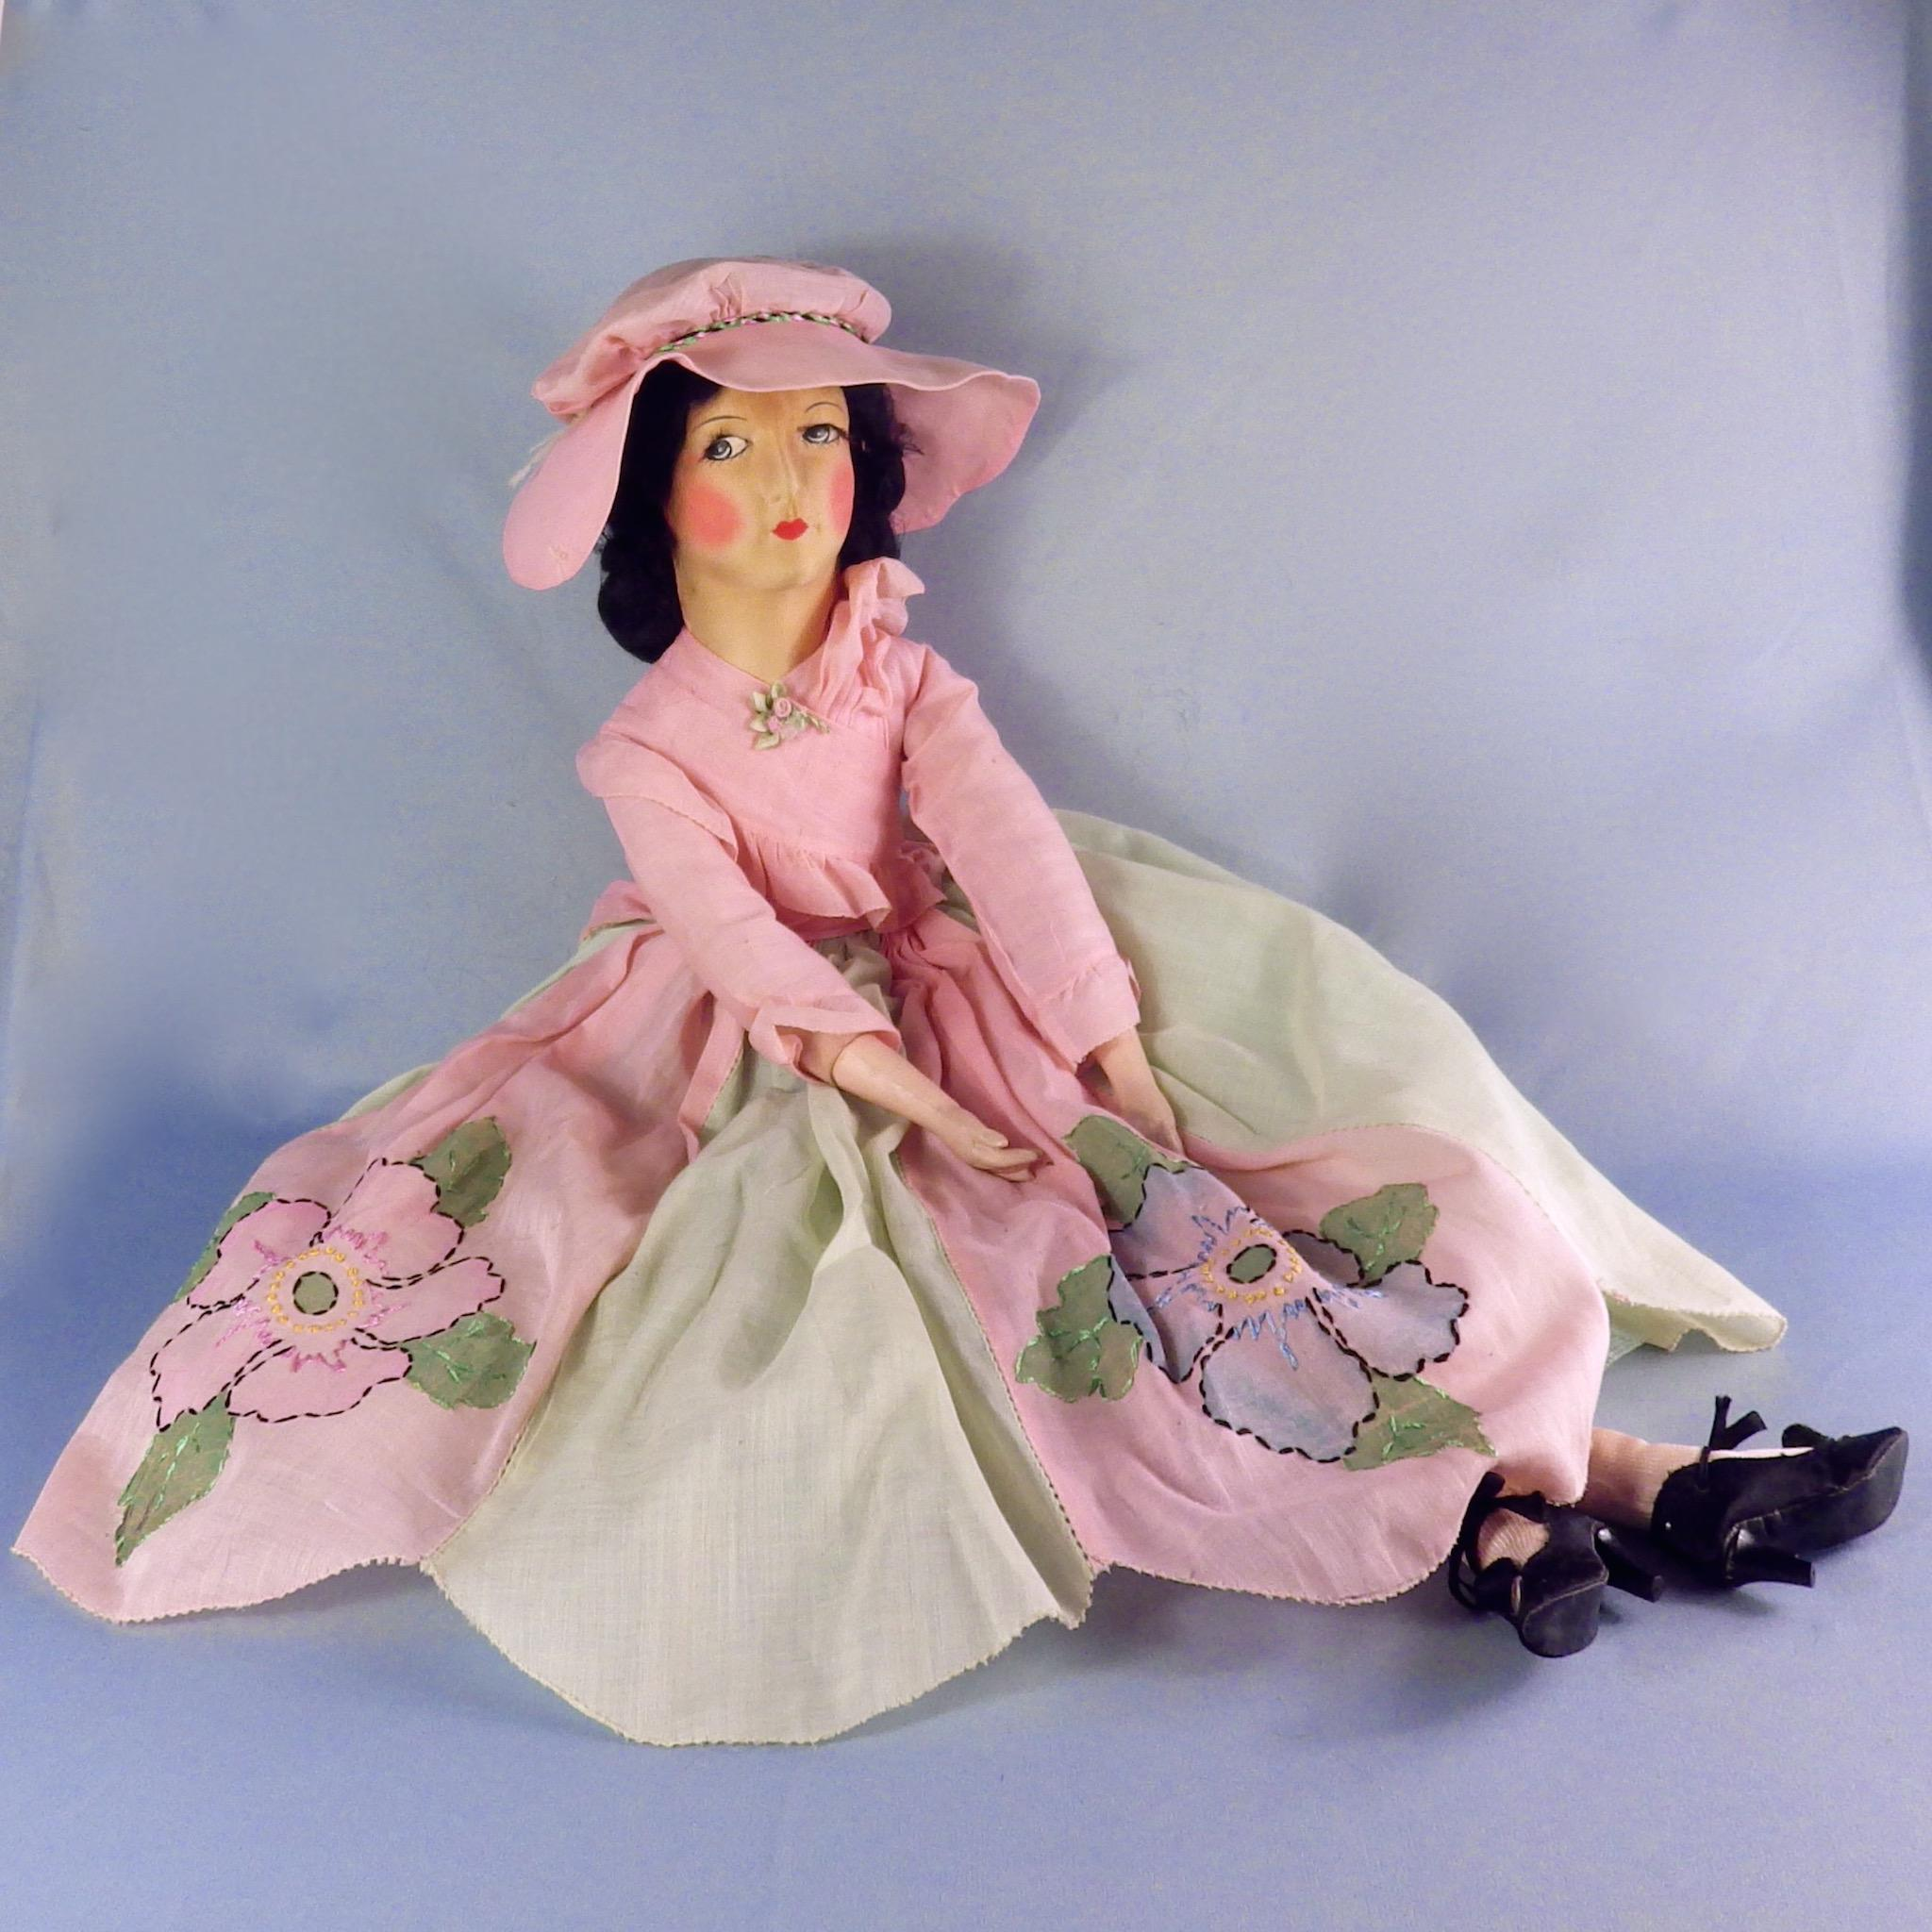 All Original Brucilla Boudoir Doll, Embroidered Dress, Cloth Face, Eyelashes